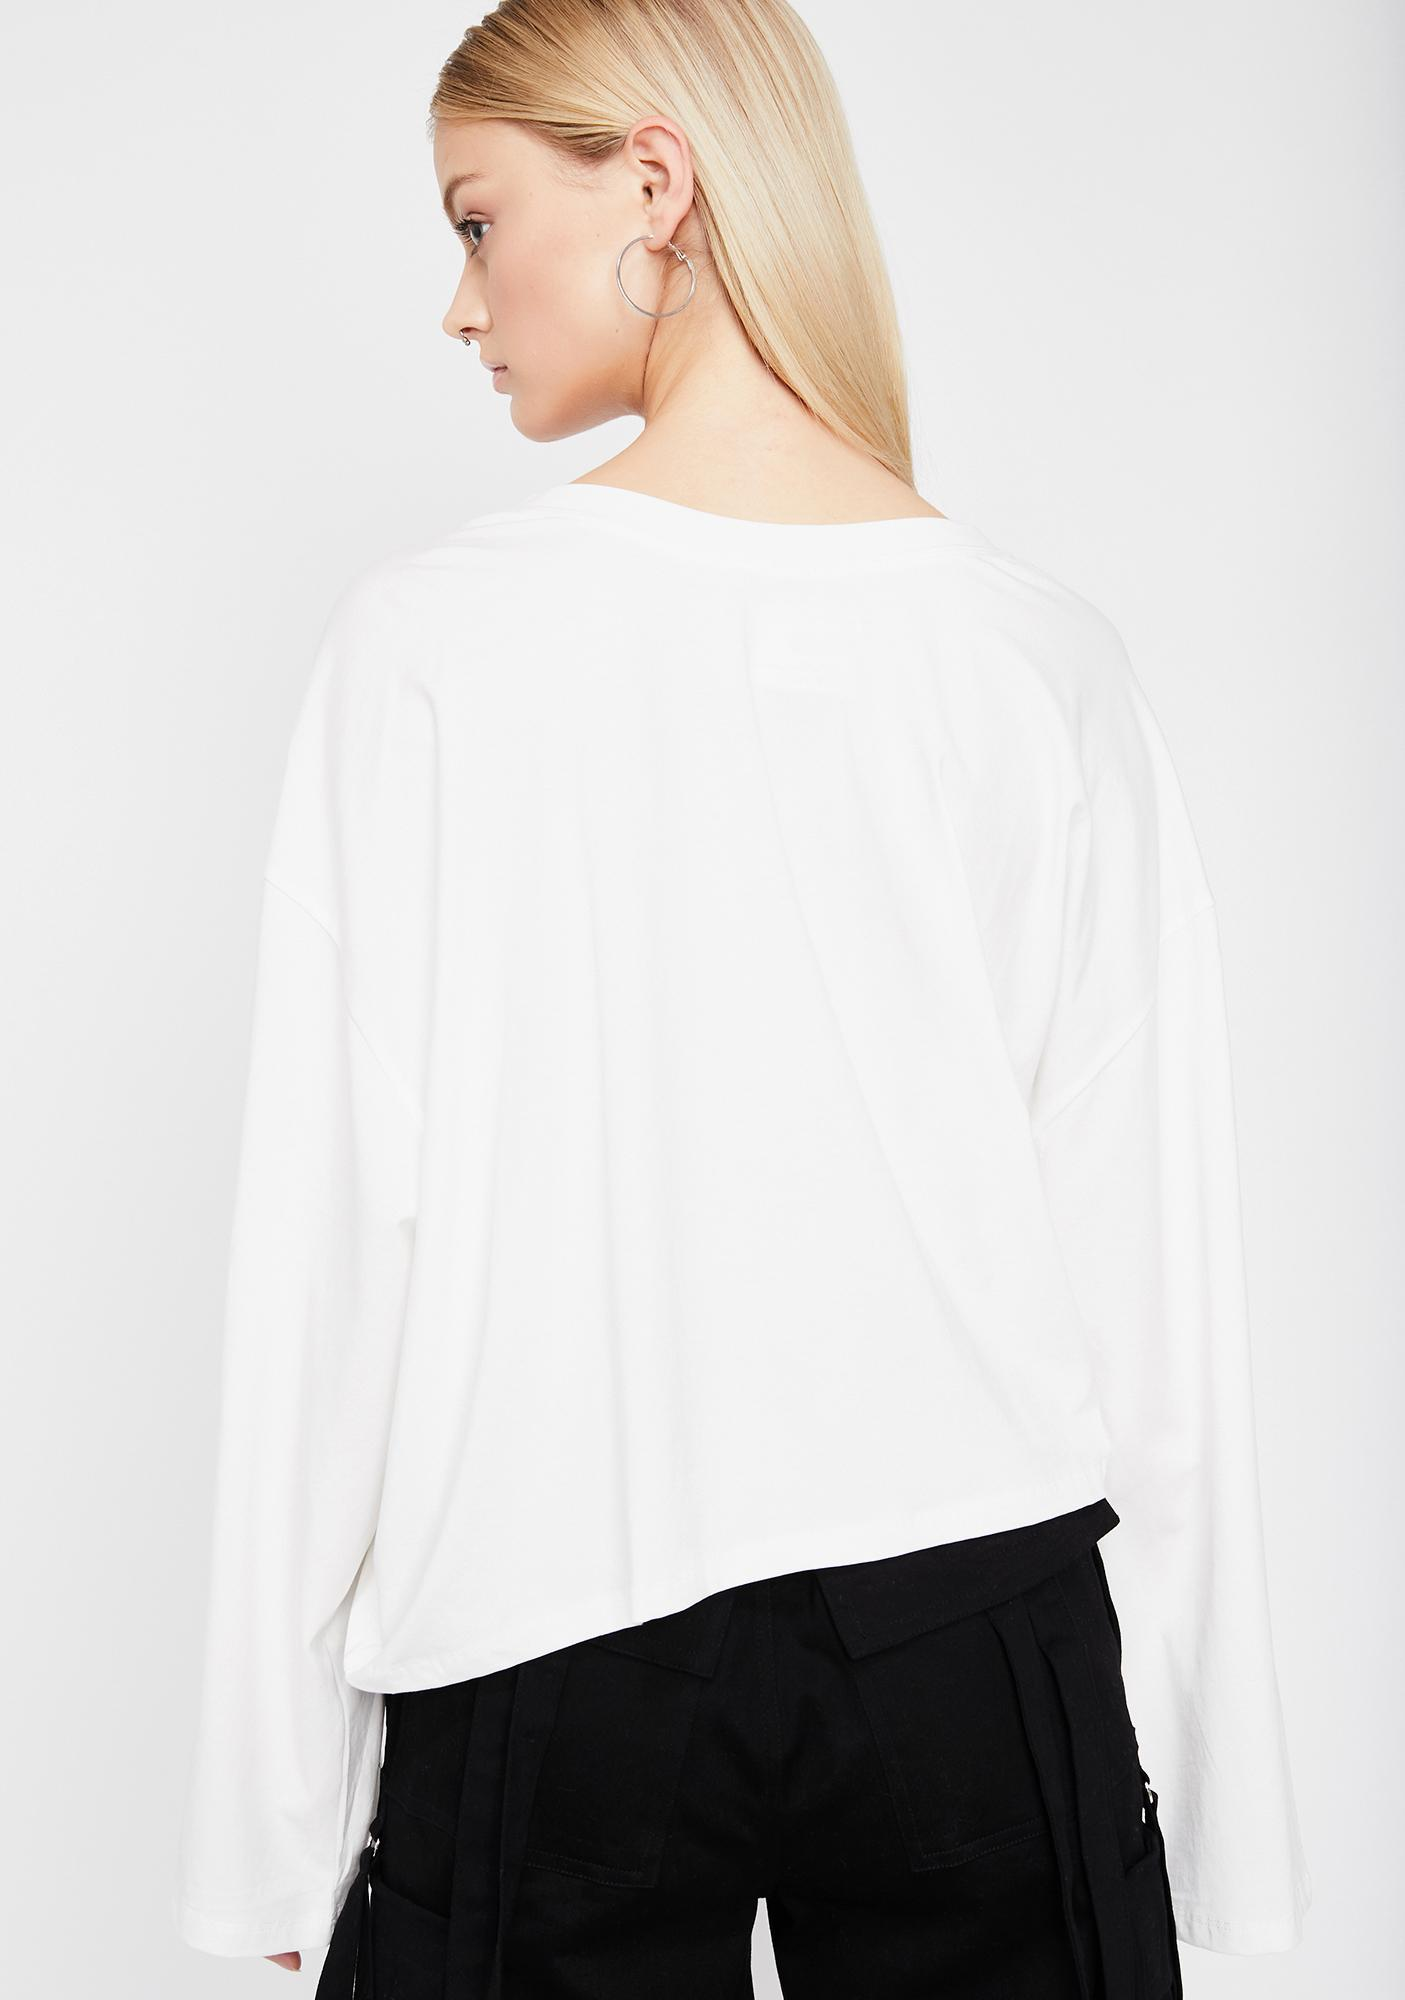 Purely Draped In Drama Wrap Top